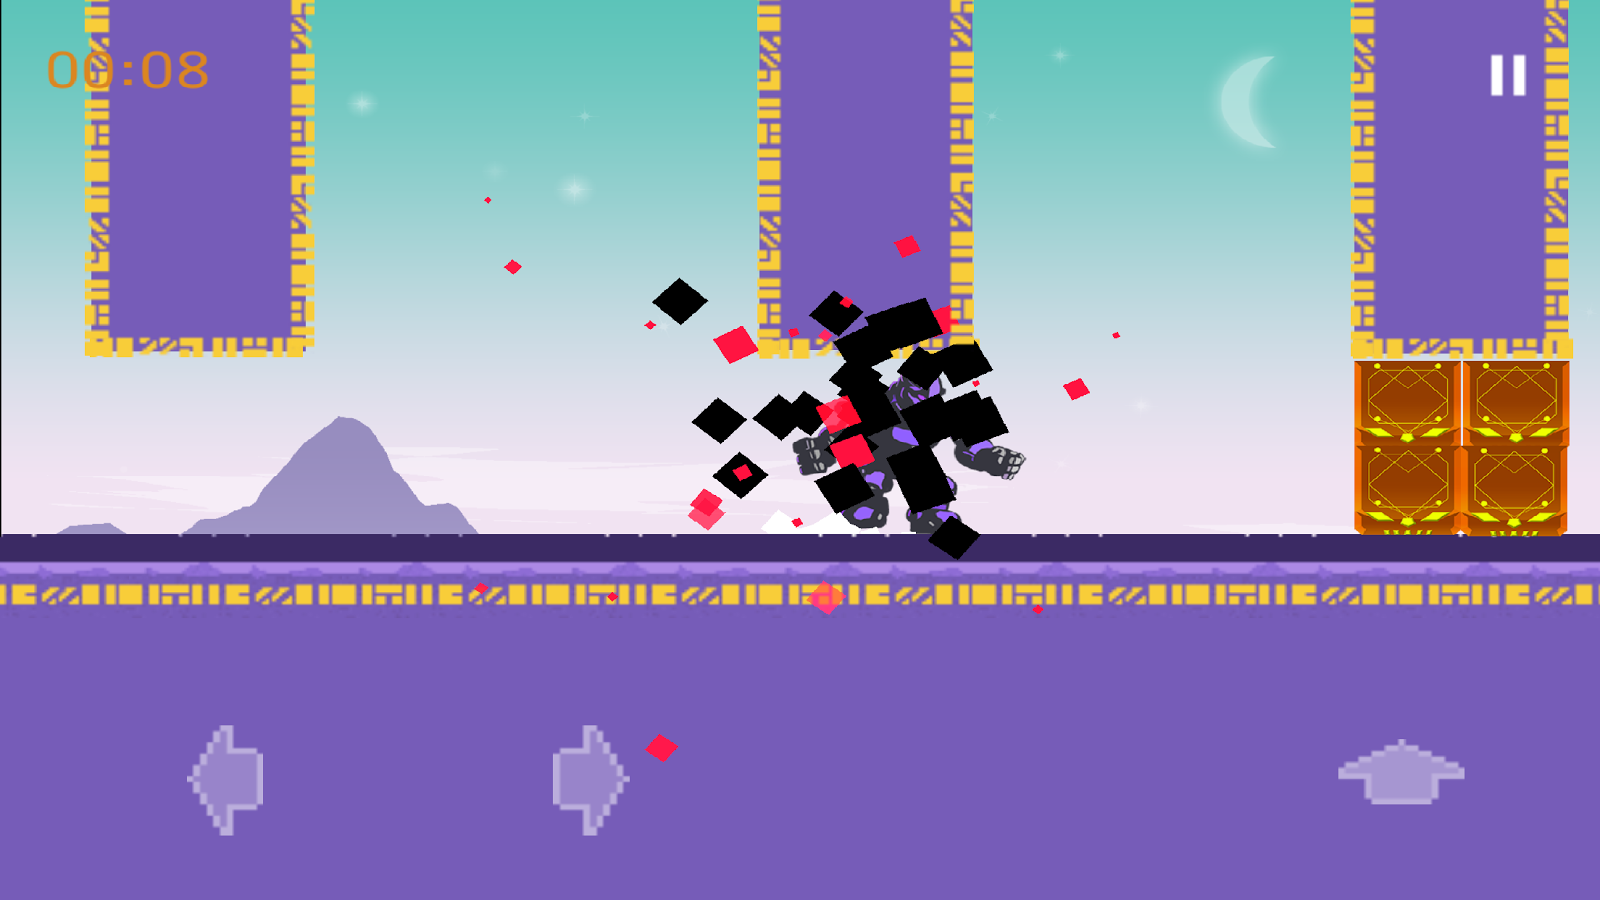 Hyper Glitch Fortress - Old School Platformer- screenshot